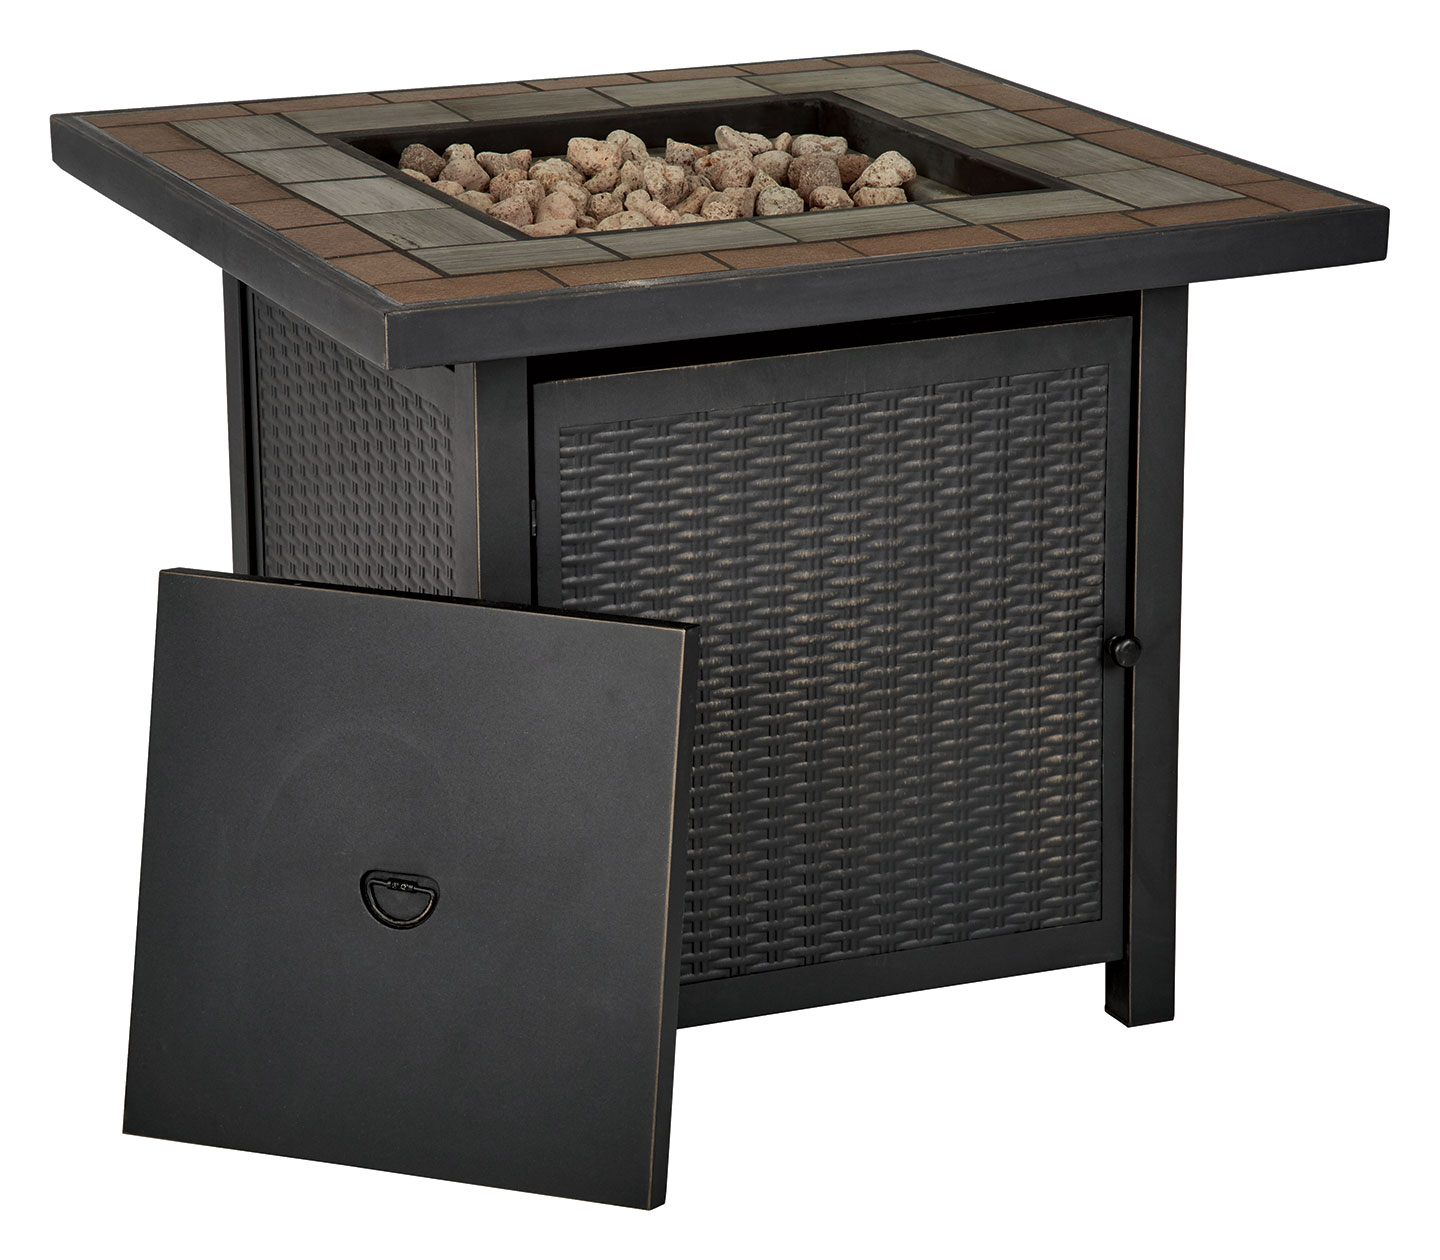 Outdoor Living - Great Lakes Ace Hardware Store on Ace Hardware Fire Pit id=83866